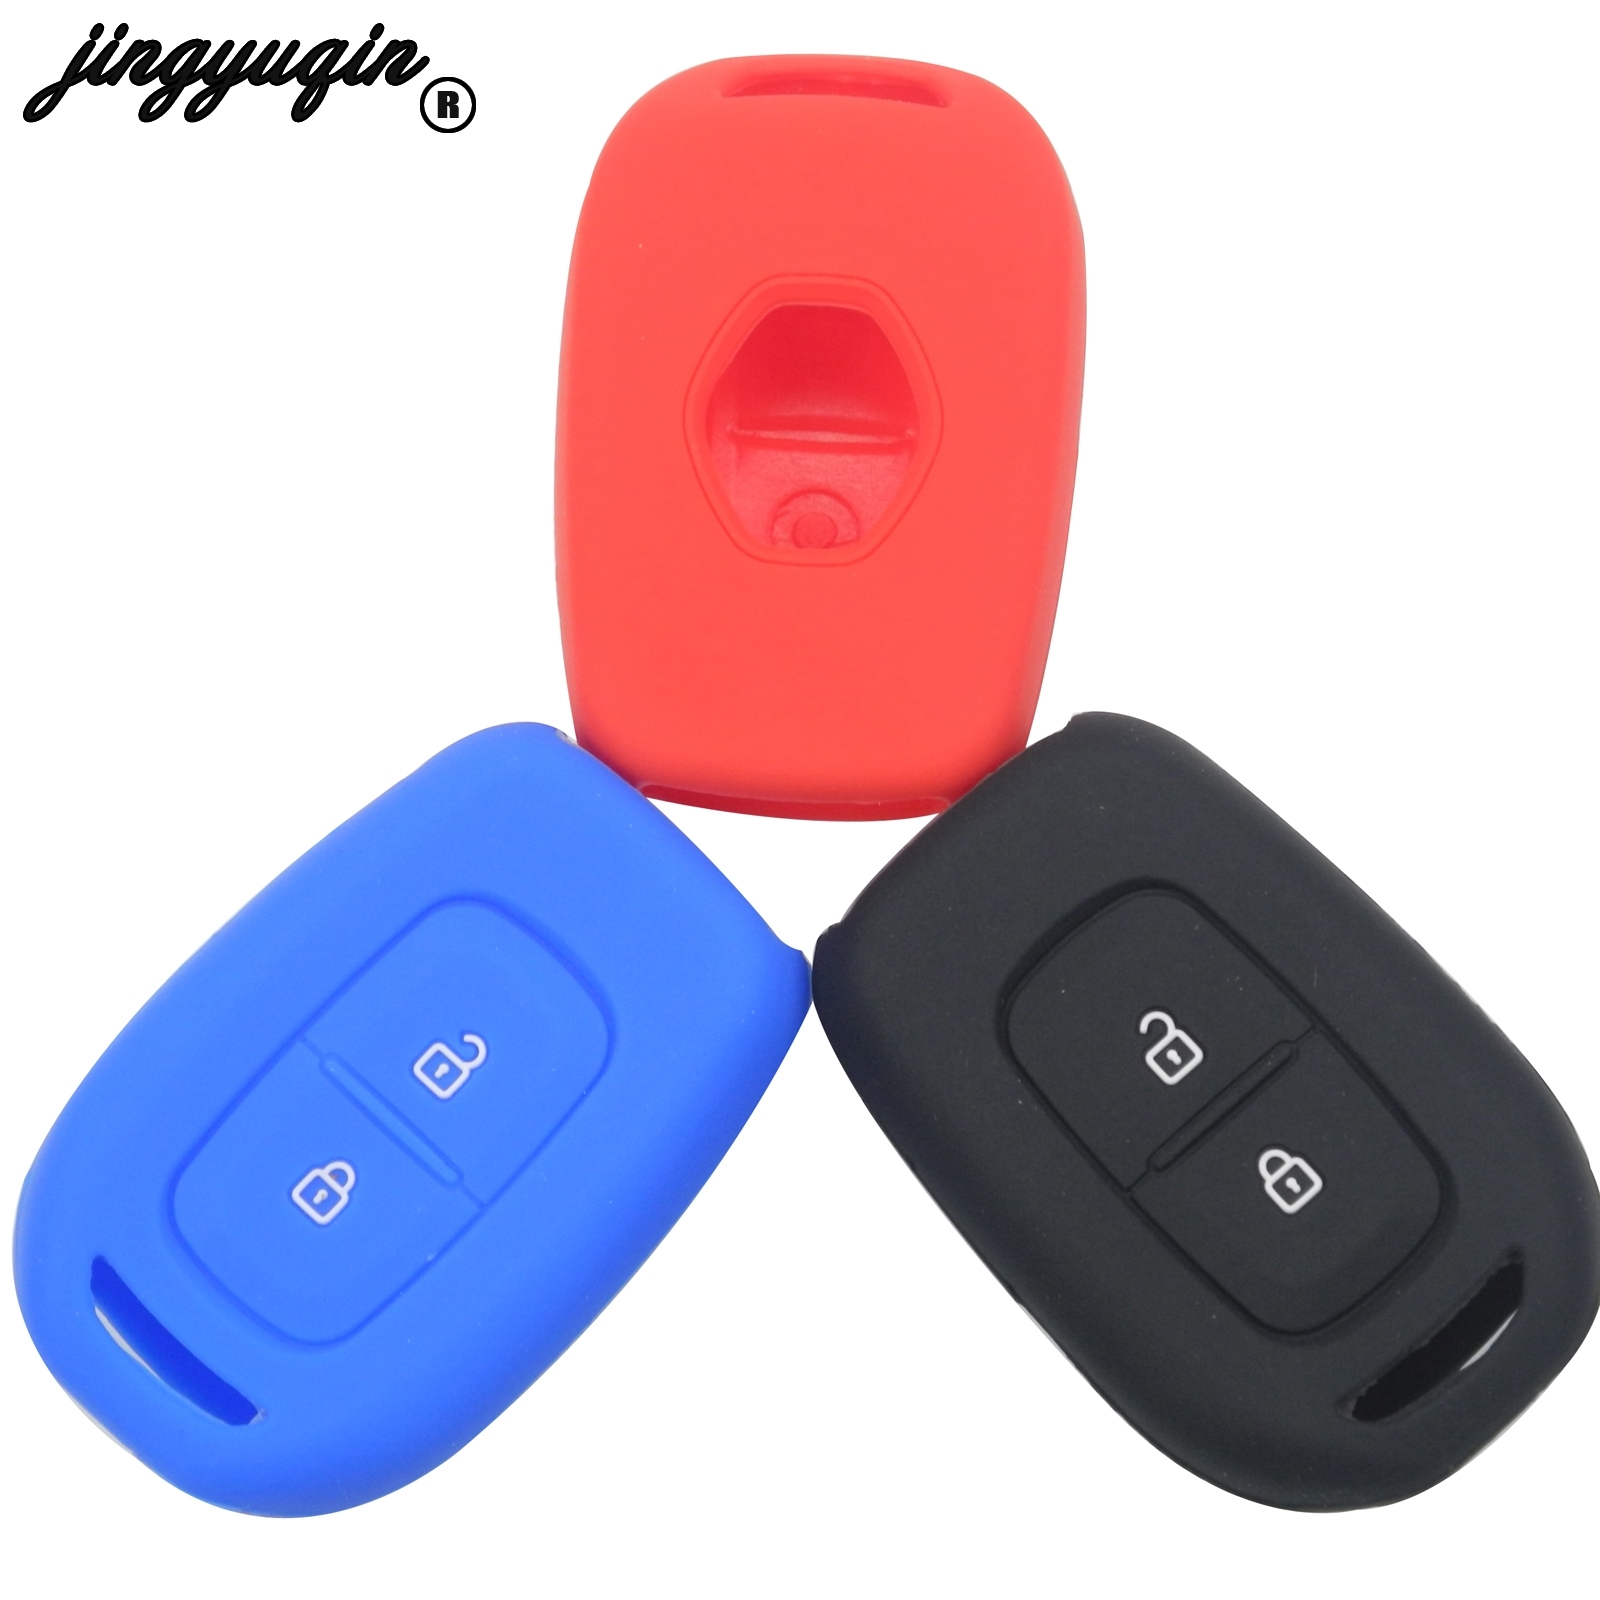 Jingyuqin 2 Buttons Remote Silicone Car Key Case For Renault Scenic Master Megane Duster Logan Clio Captur Laguna